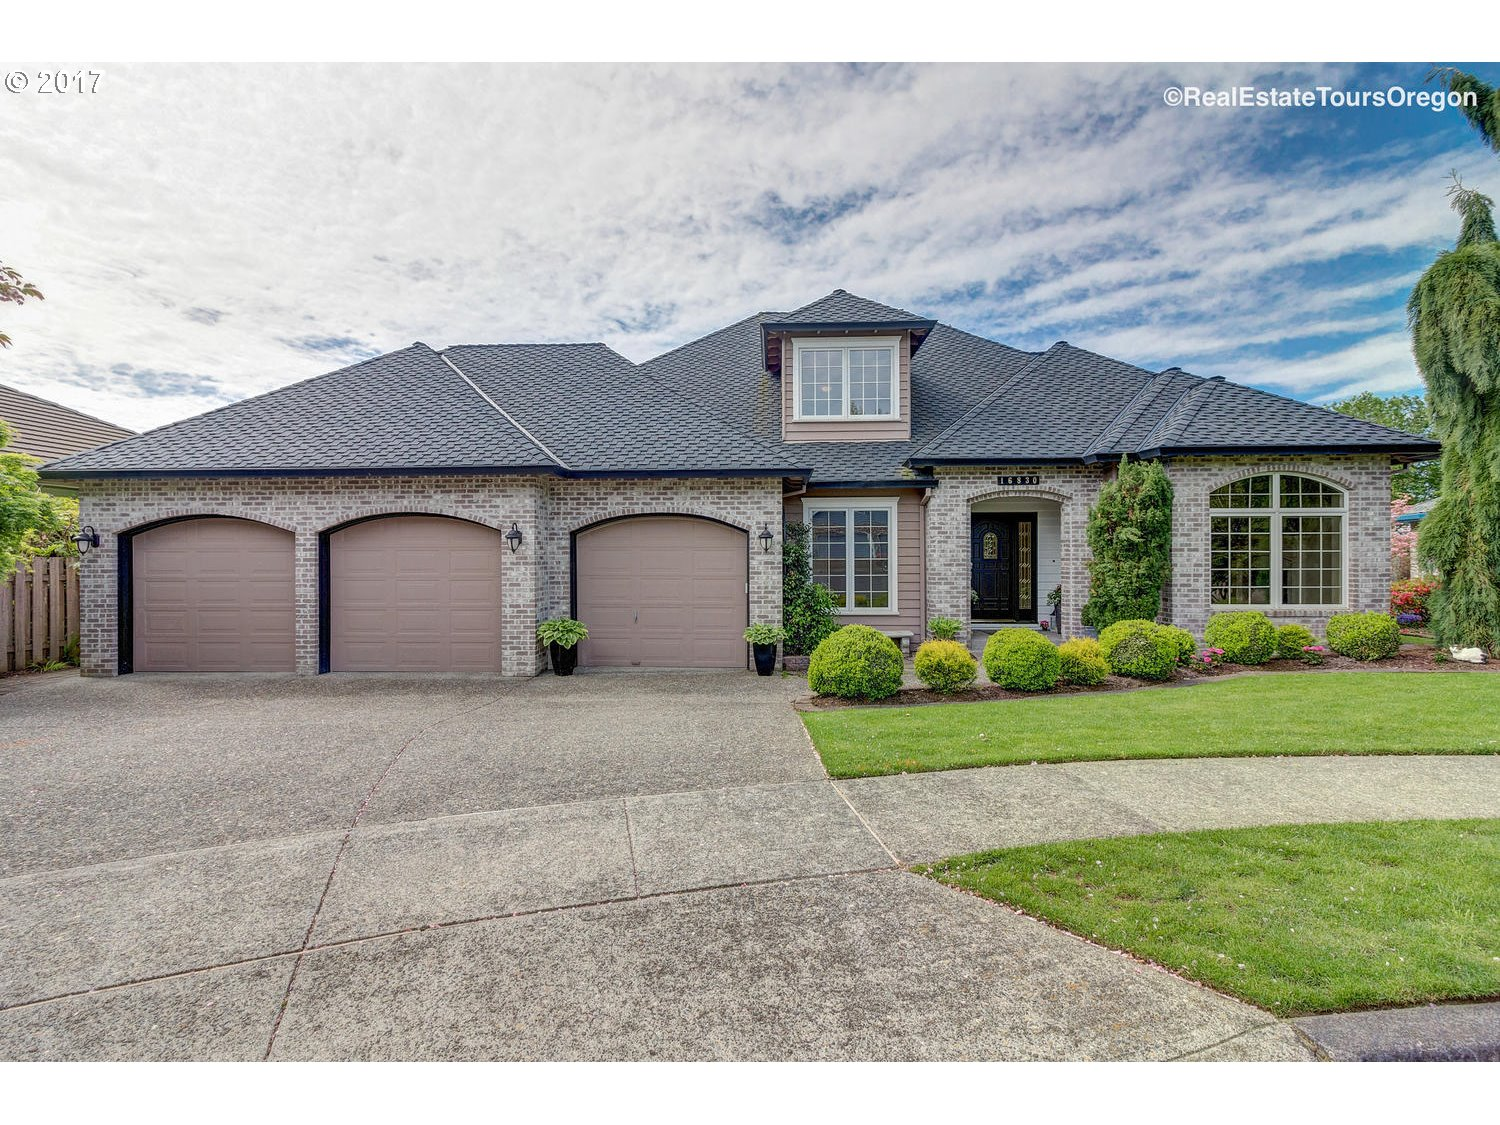 16830 NW FIRESTONE CT, Beaverton, OR 97006